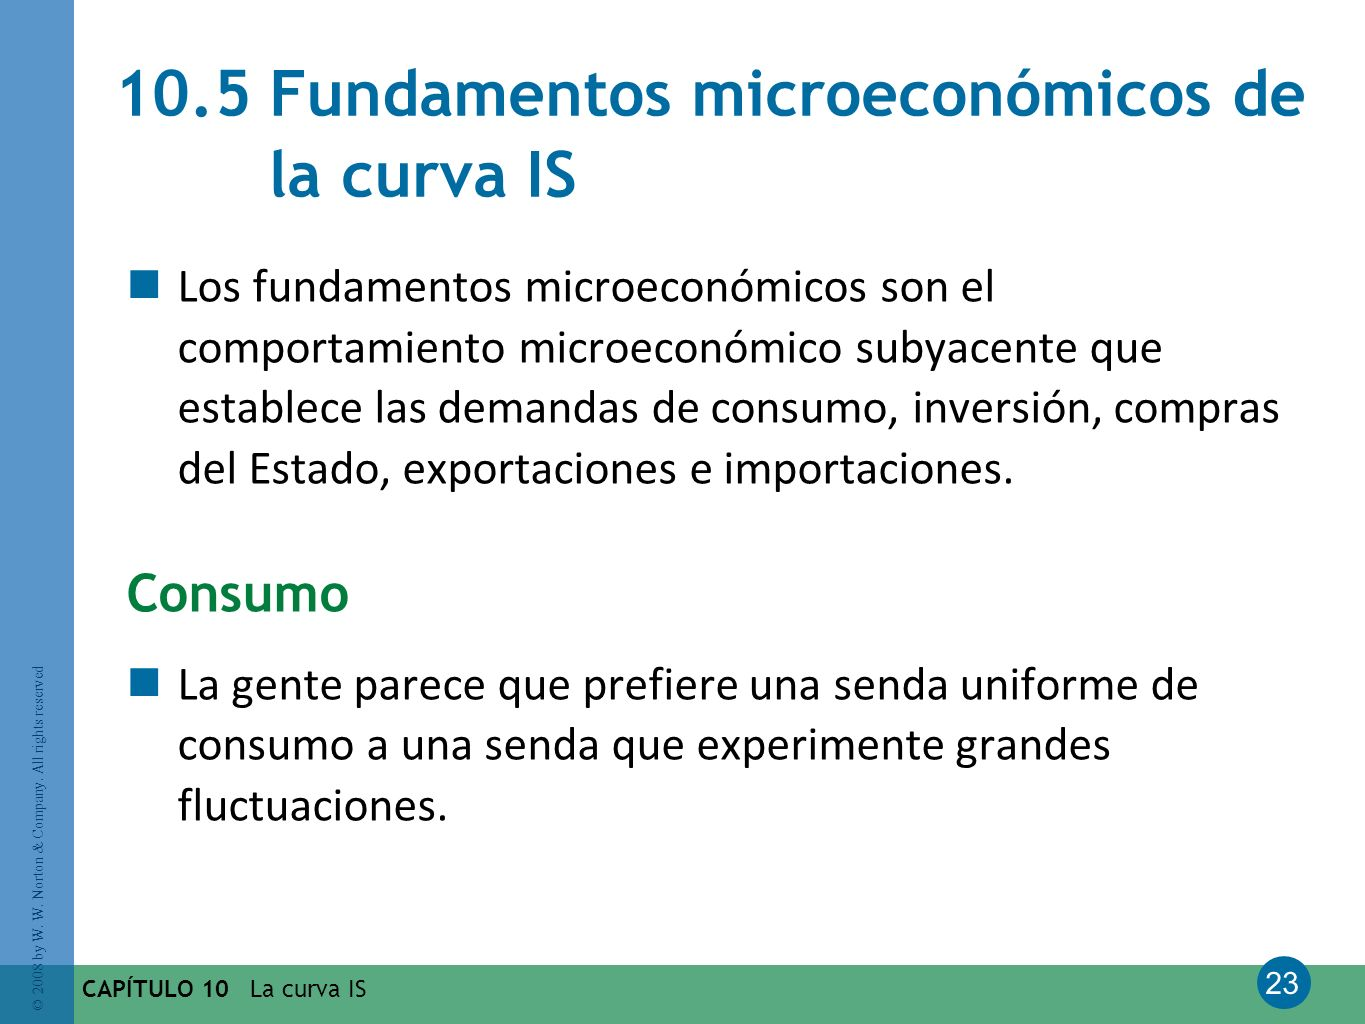 10.5 Fundamentos microeconómicos de la curva IS